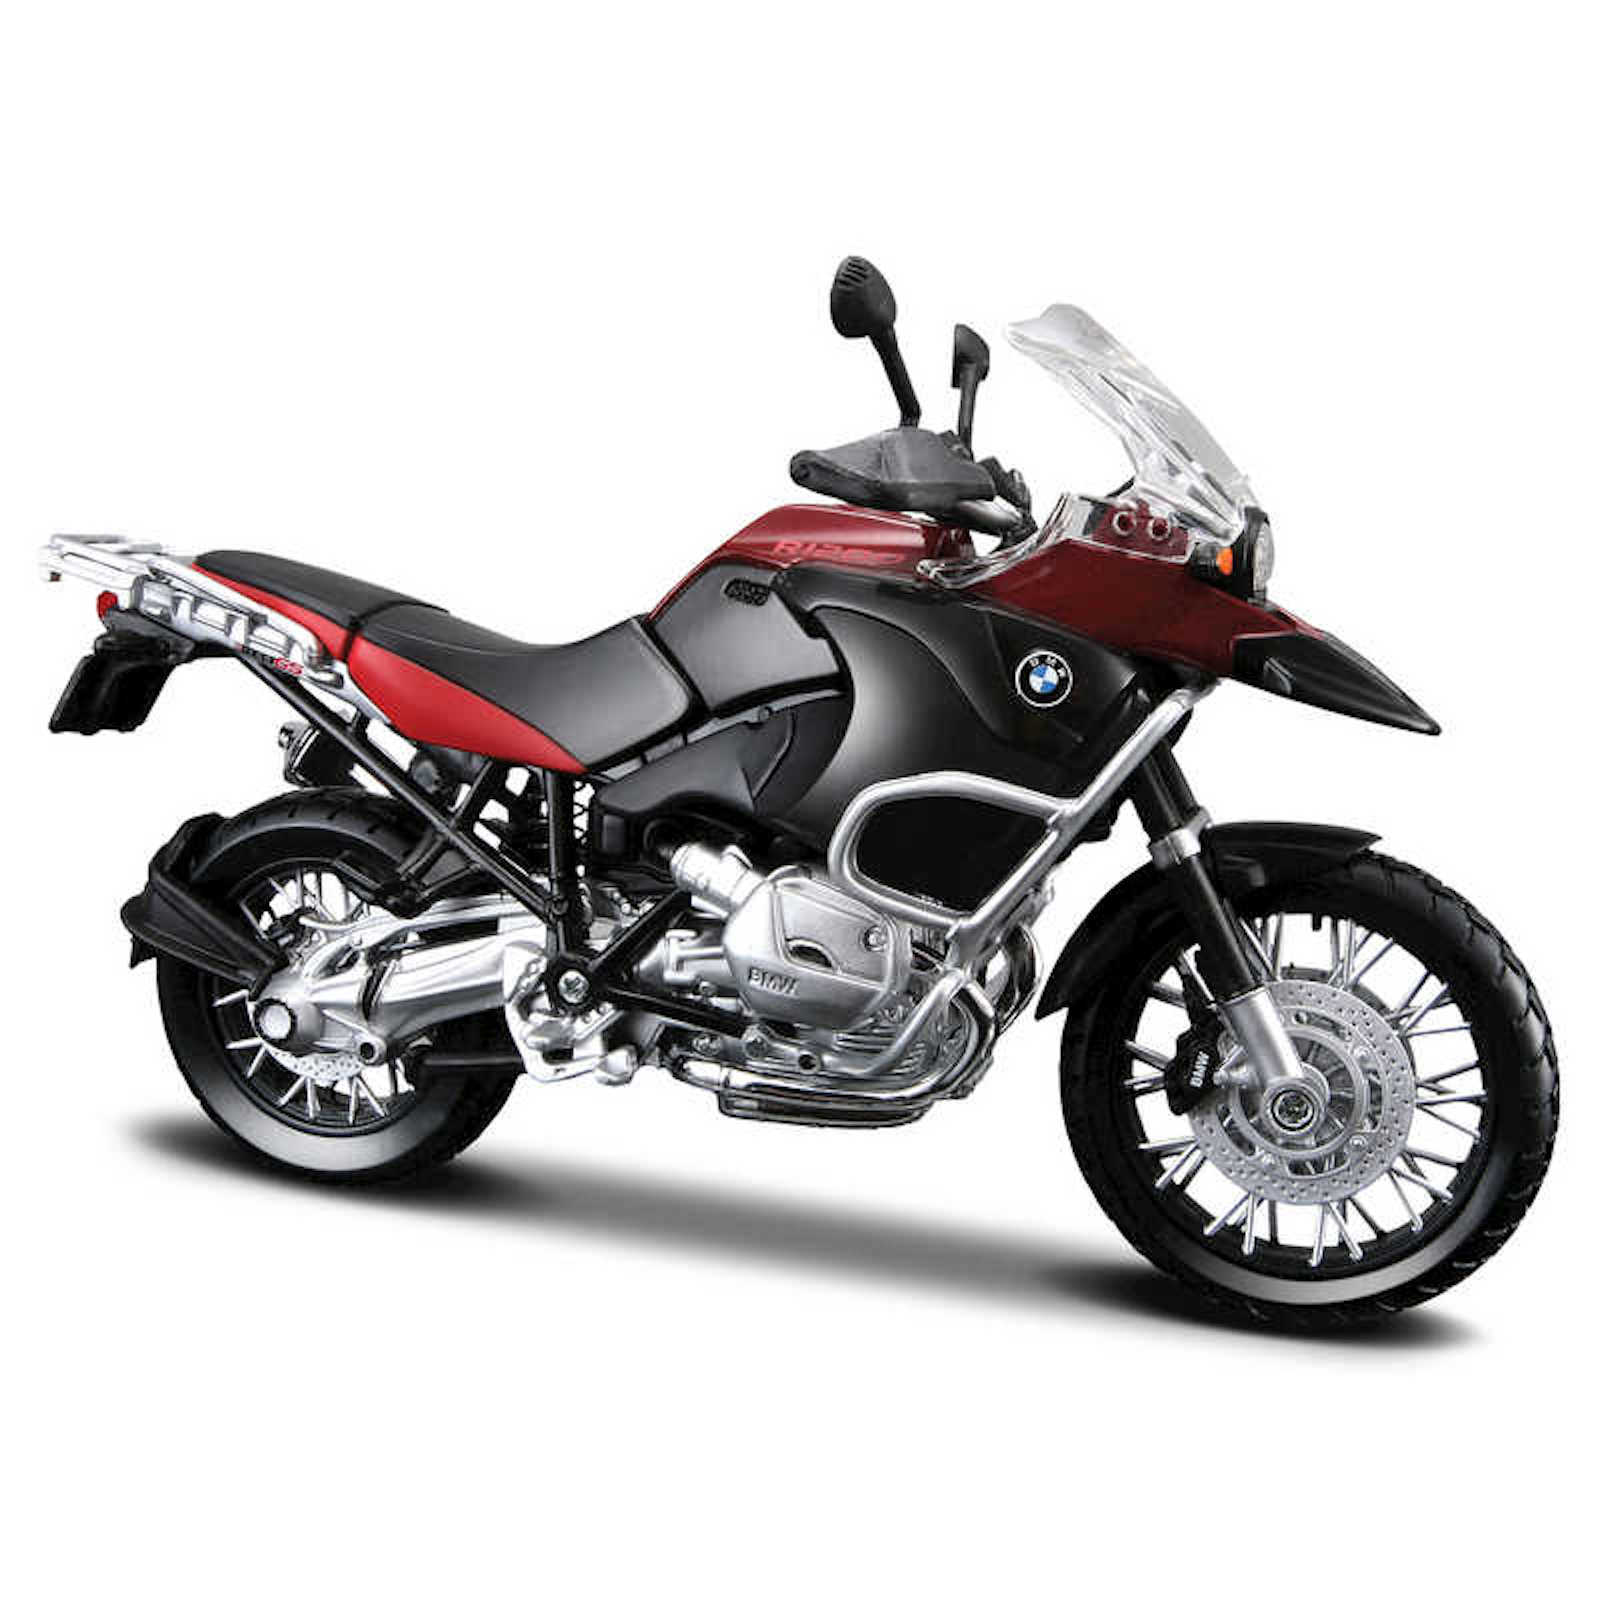 BMW R 1200 GS Assembly Line Kit 1:12 Scale Model Motorcycle Collectors Owners Present Gift